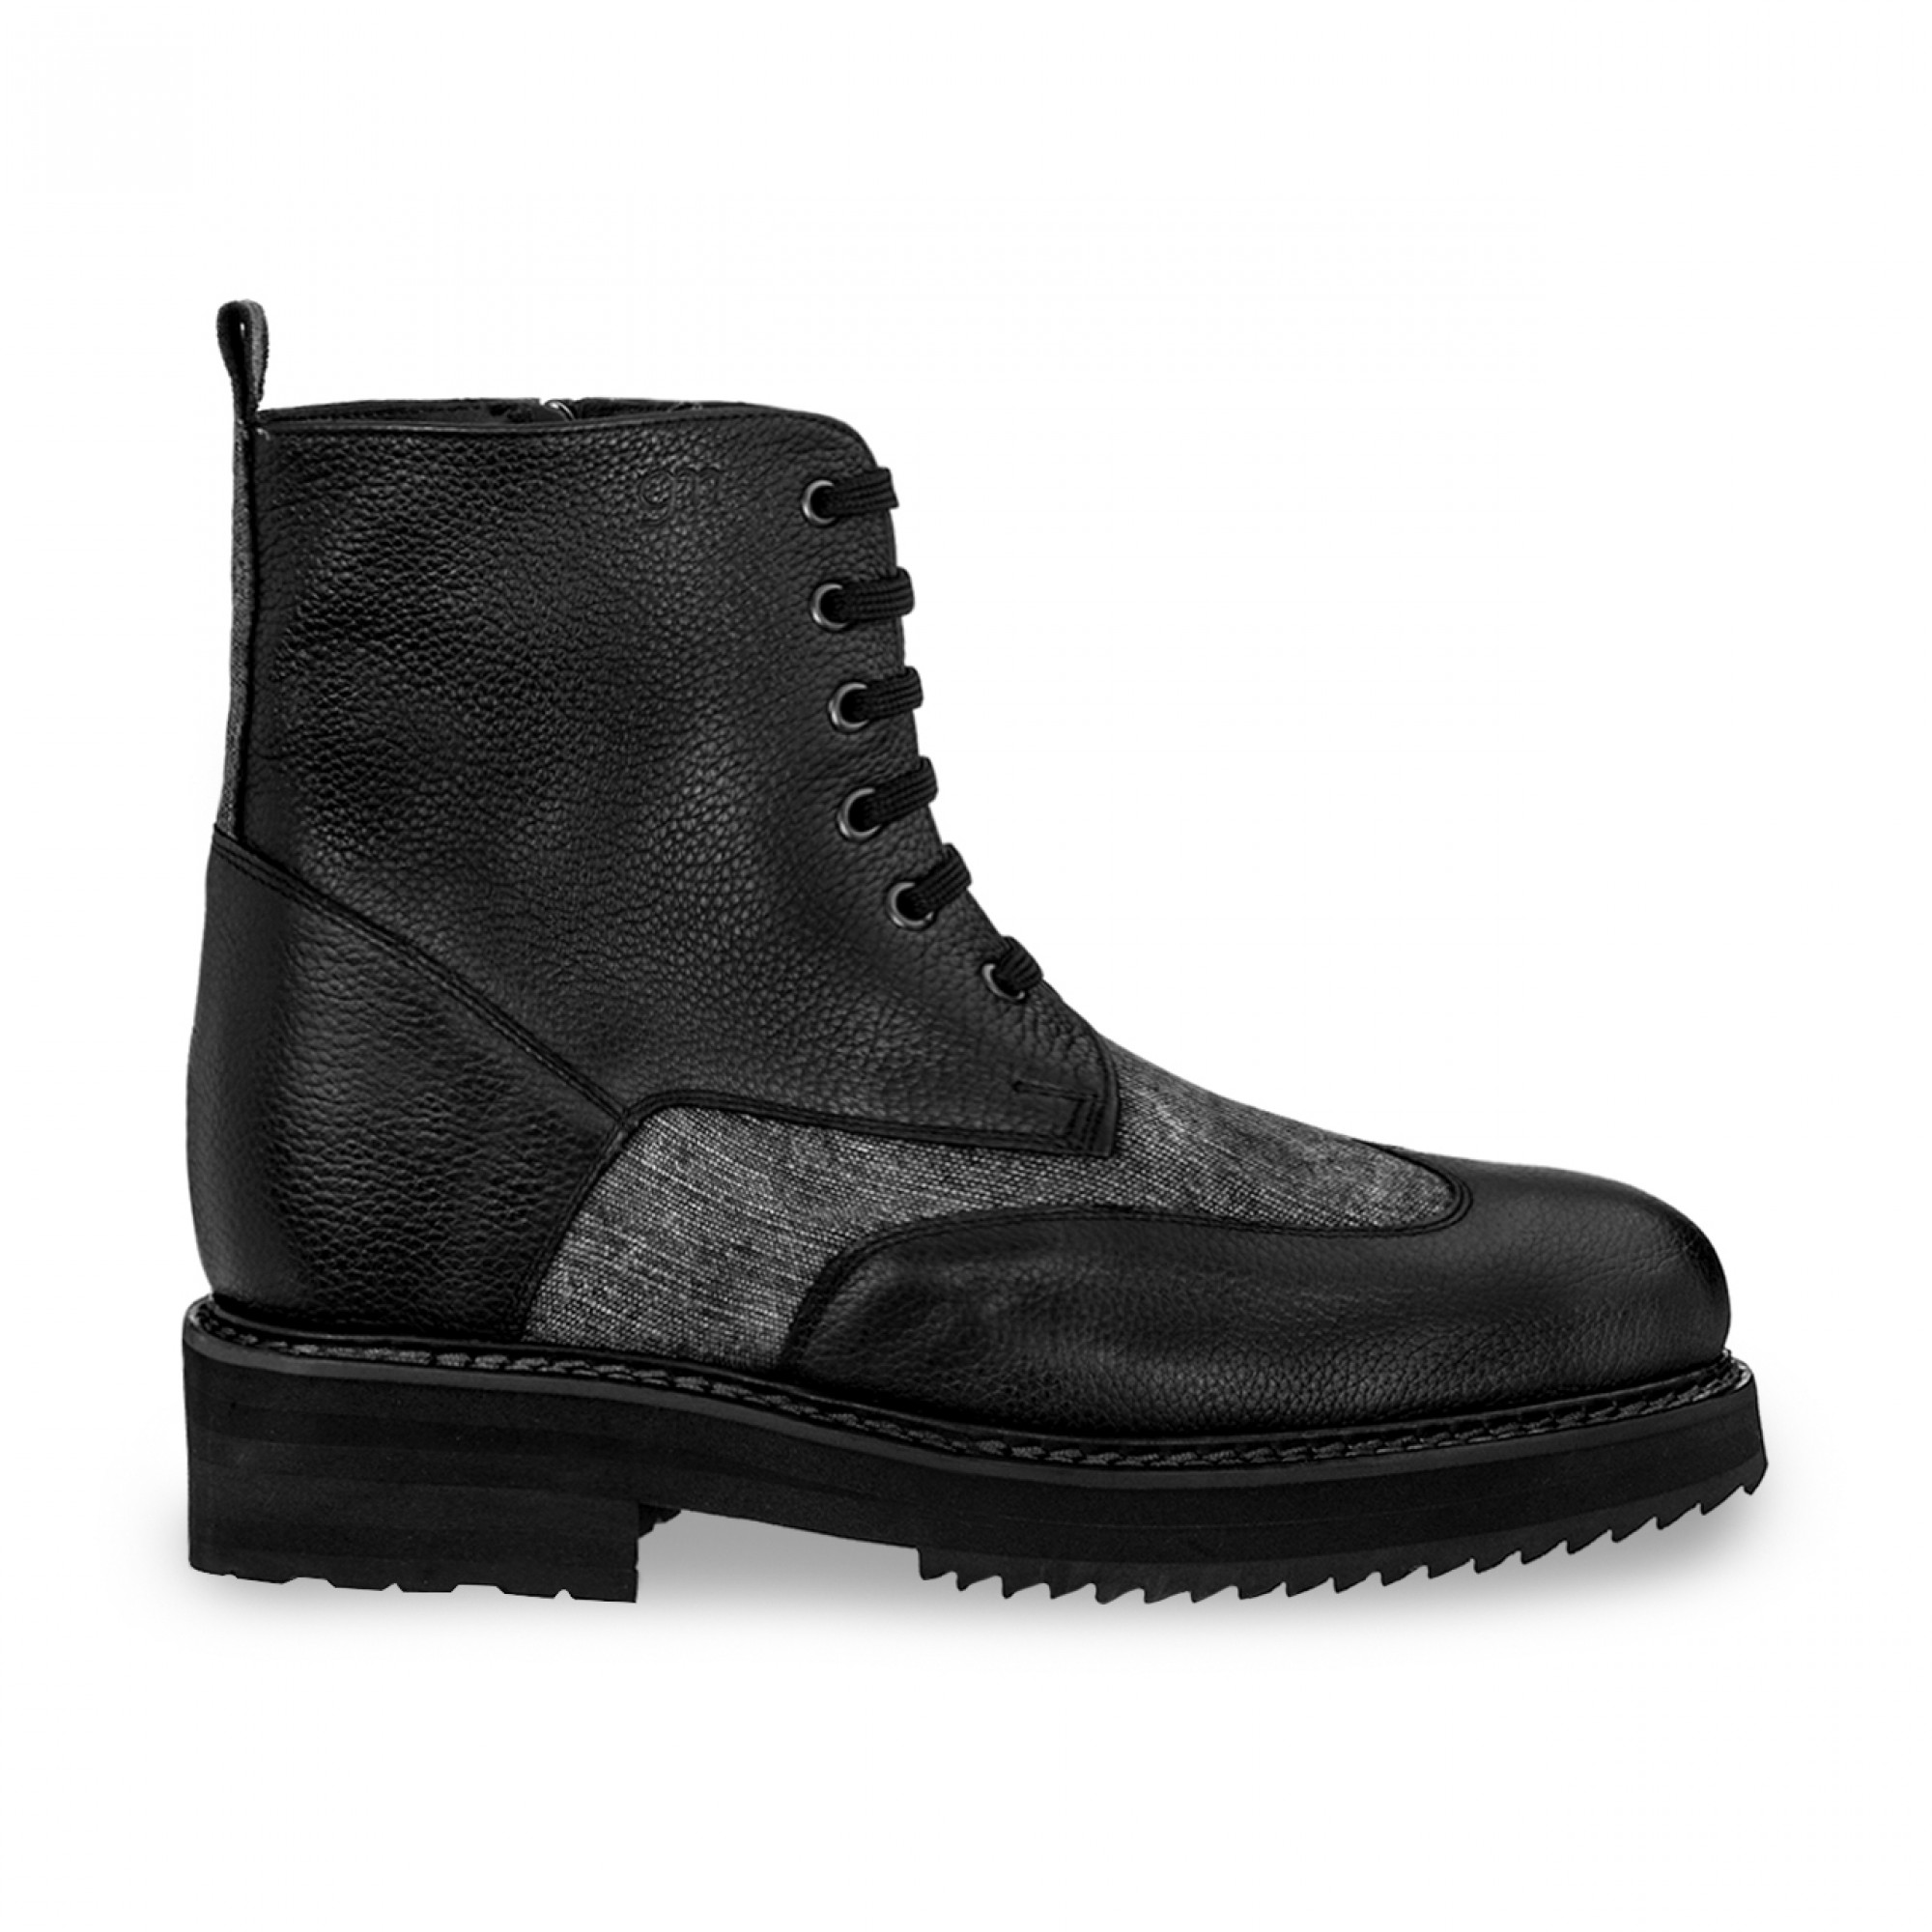 6 inch boots